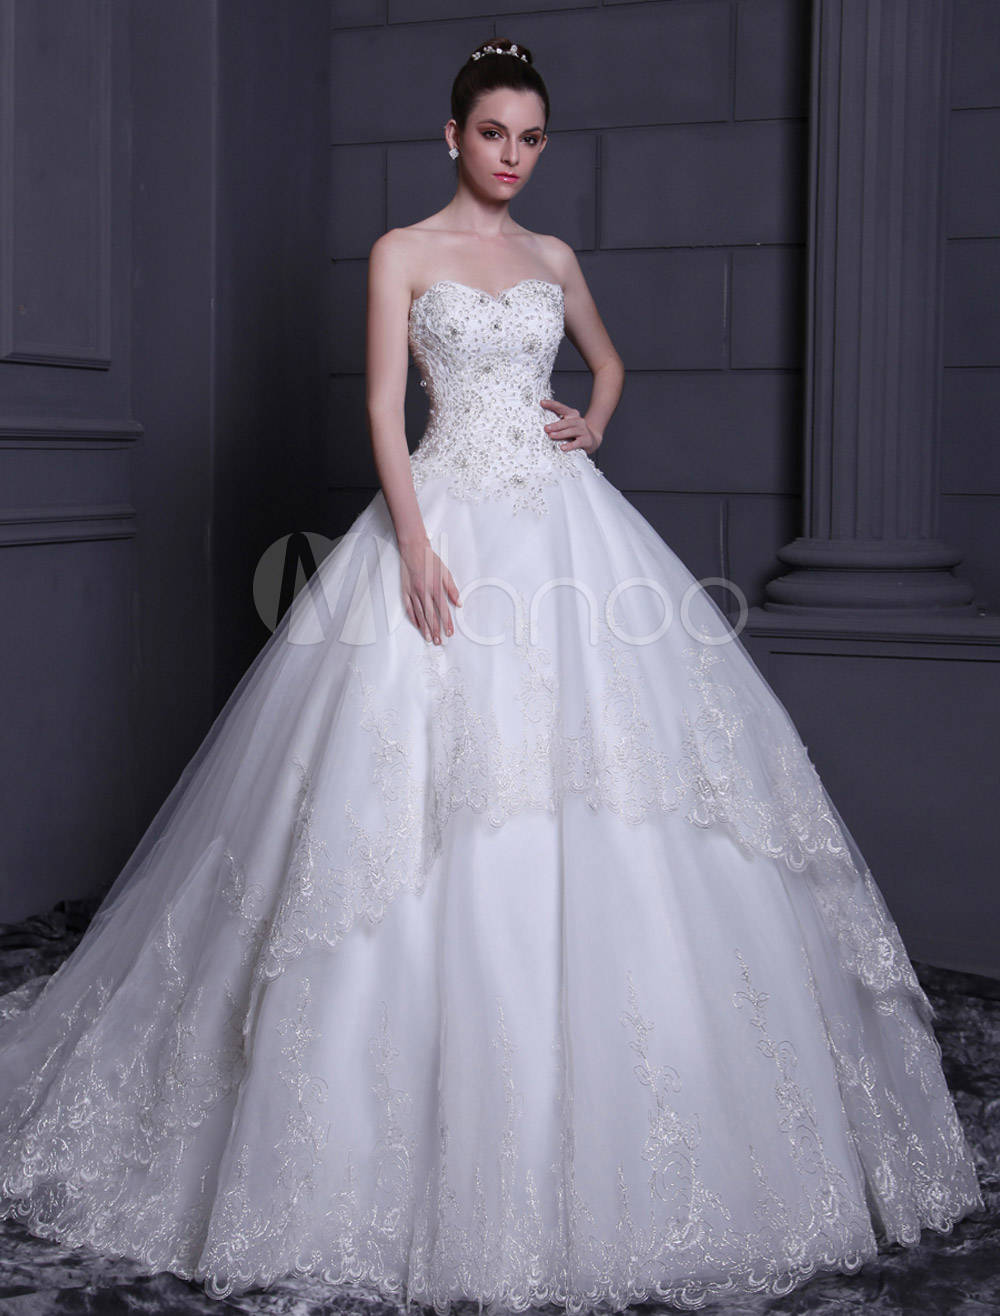 White Ball Gown Strapless Tulle Bridal Wedding Dress